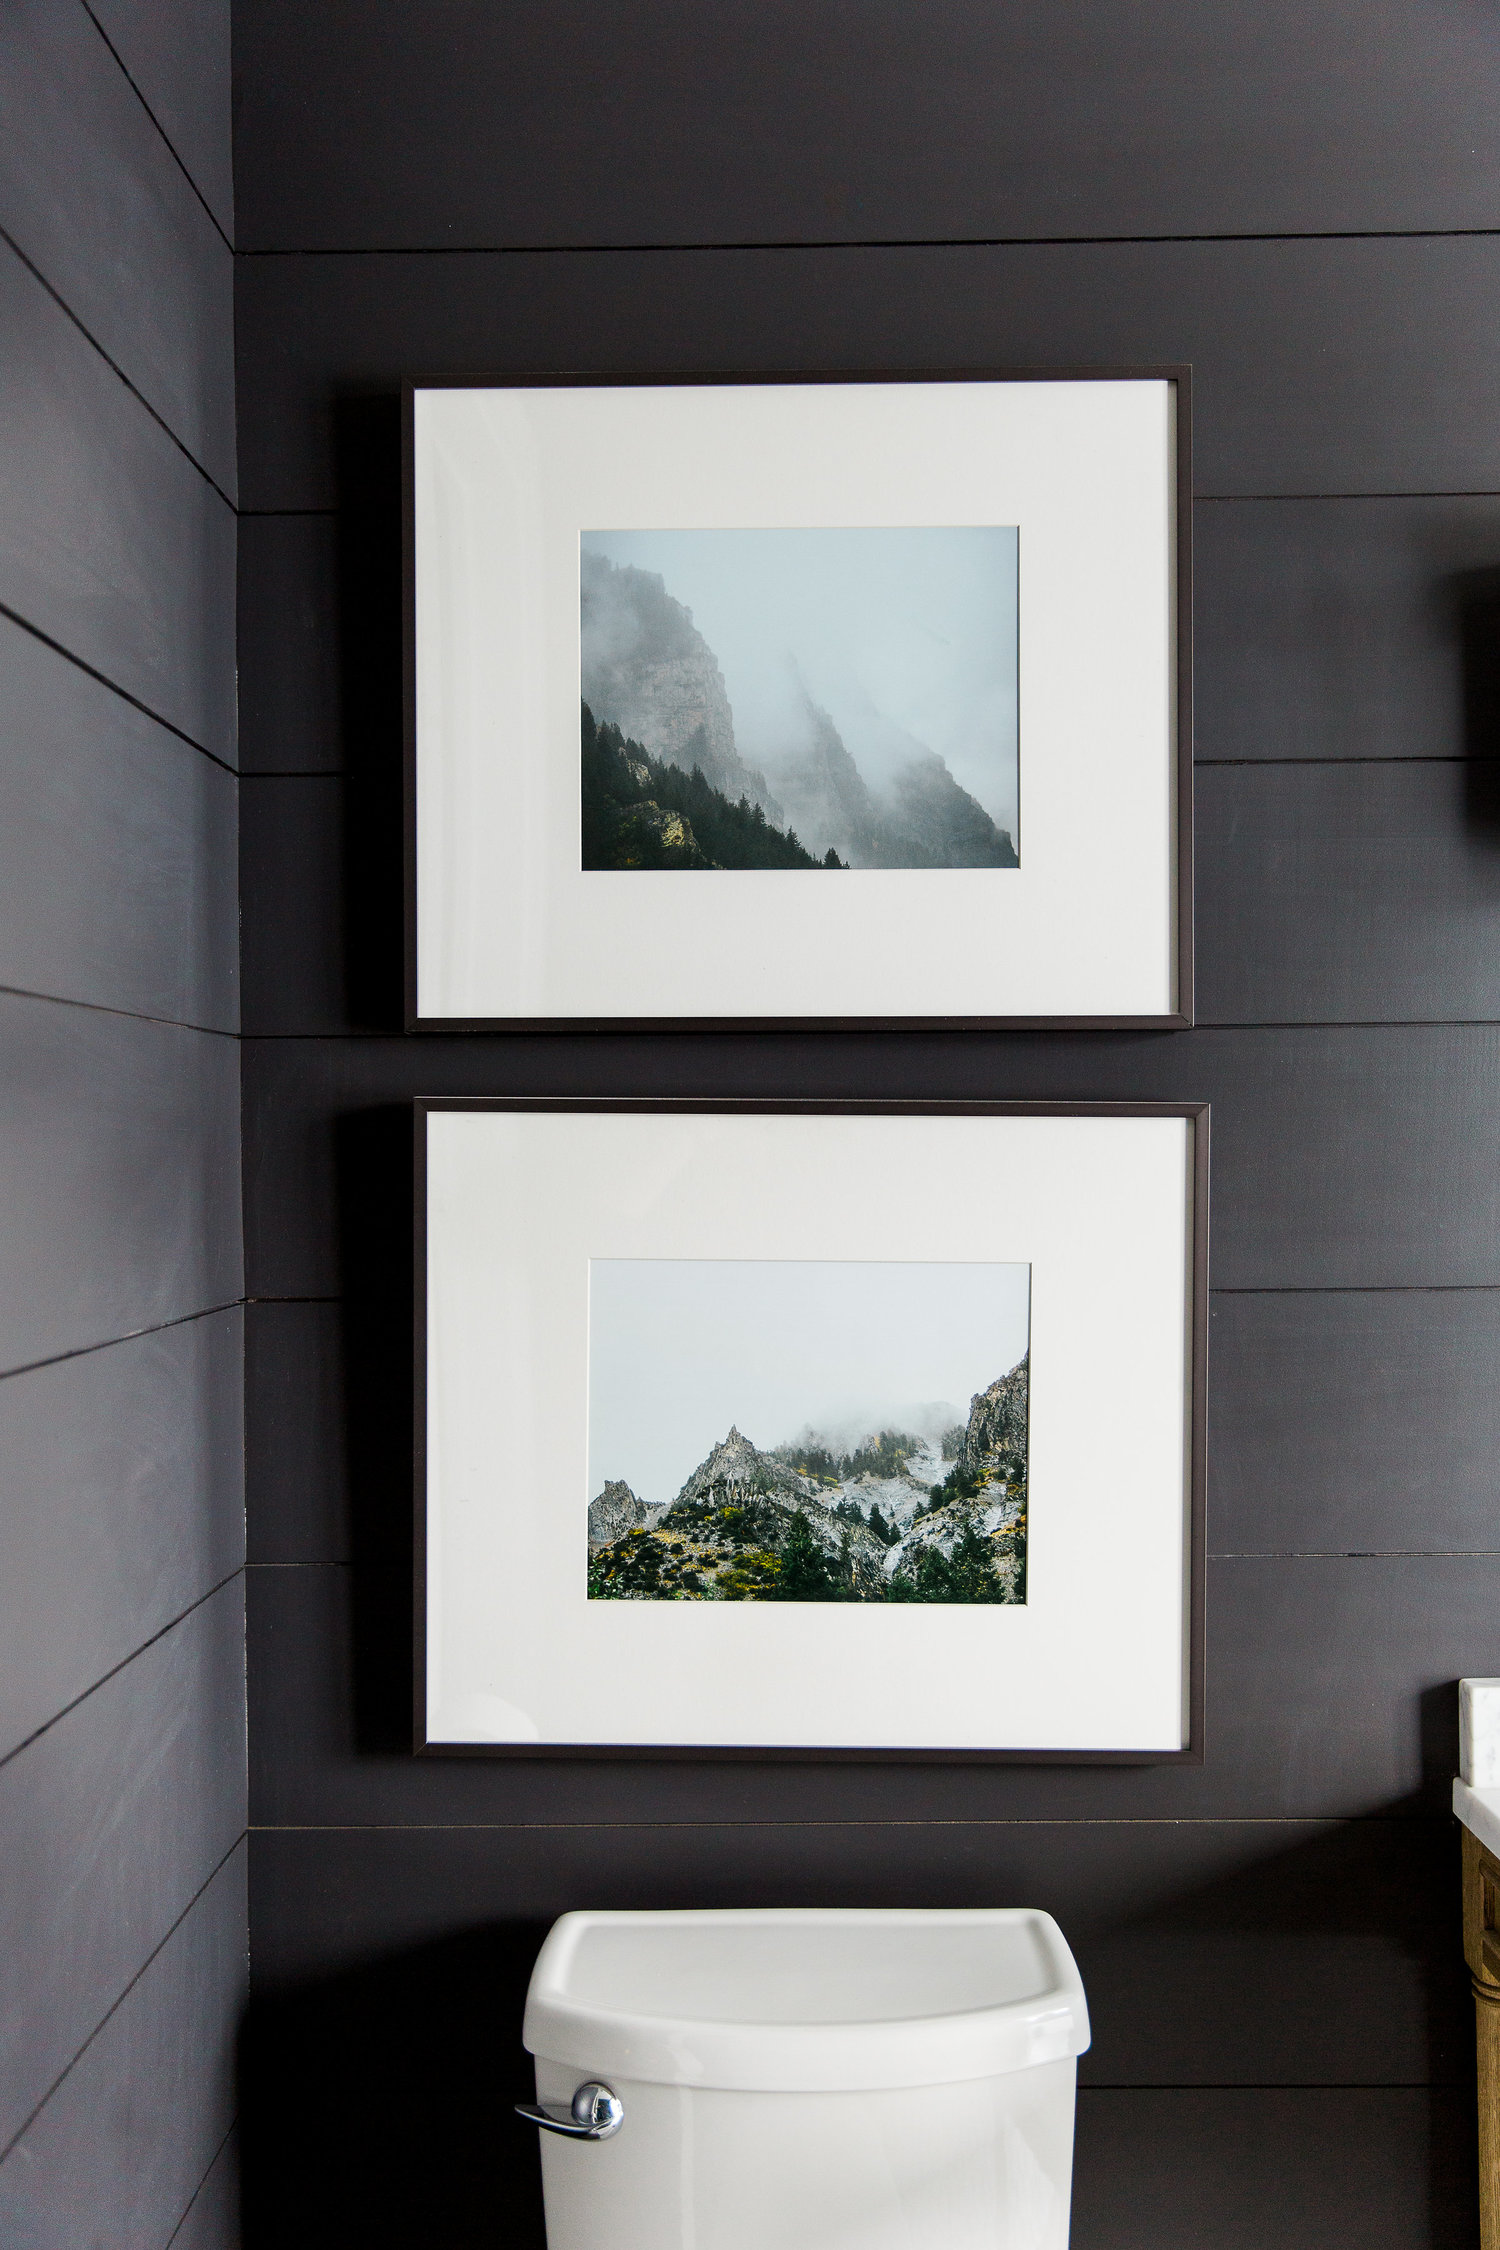 Two framed pictures hanging above toilet